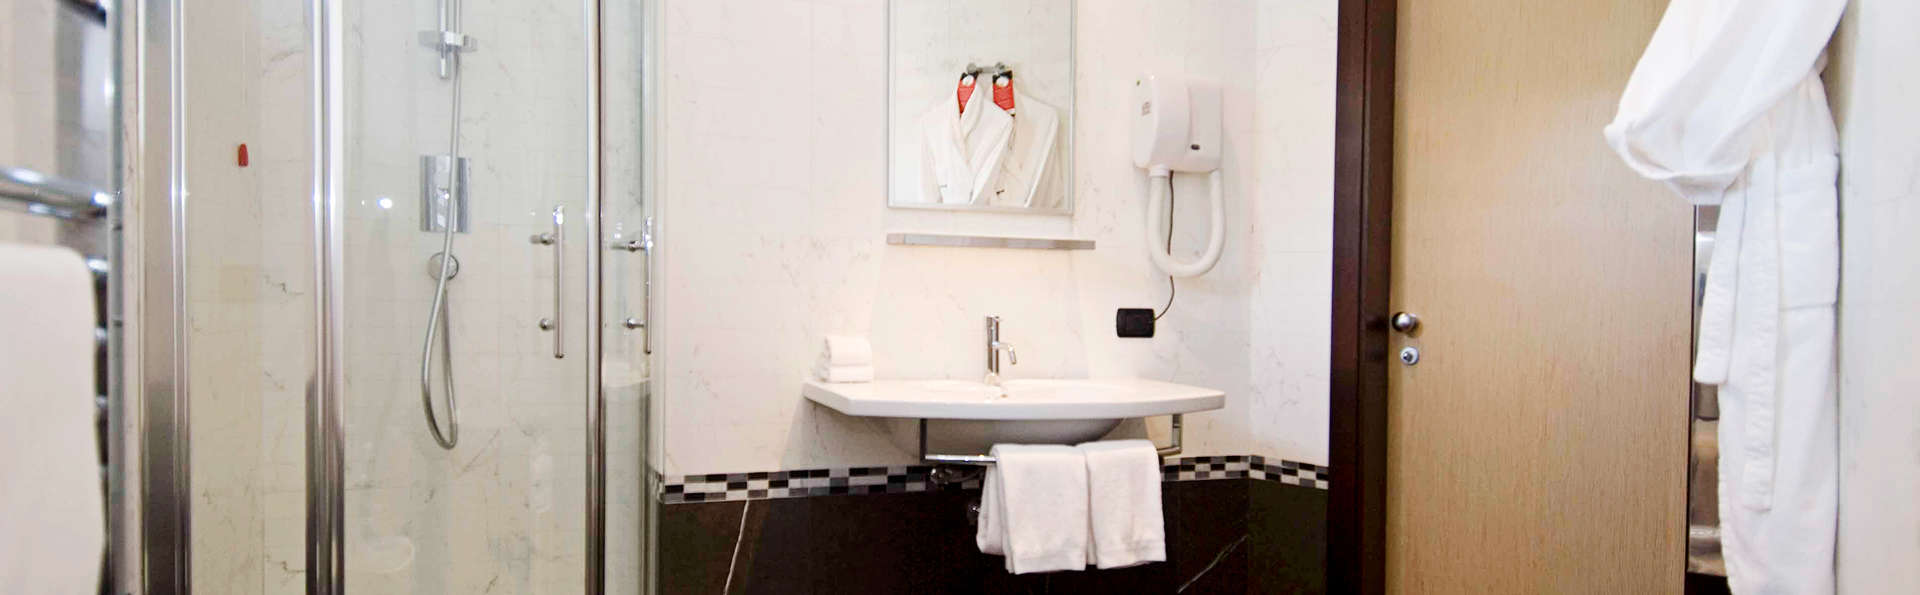 Together florence inn 4 bagno a ripoli itali - Booking bagno a ripoli ...